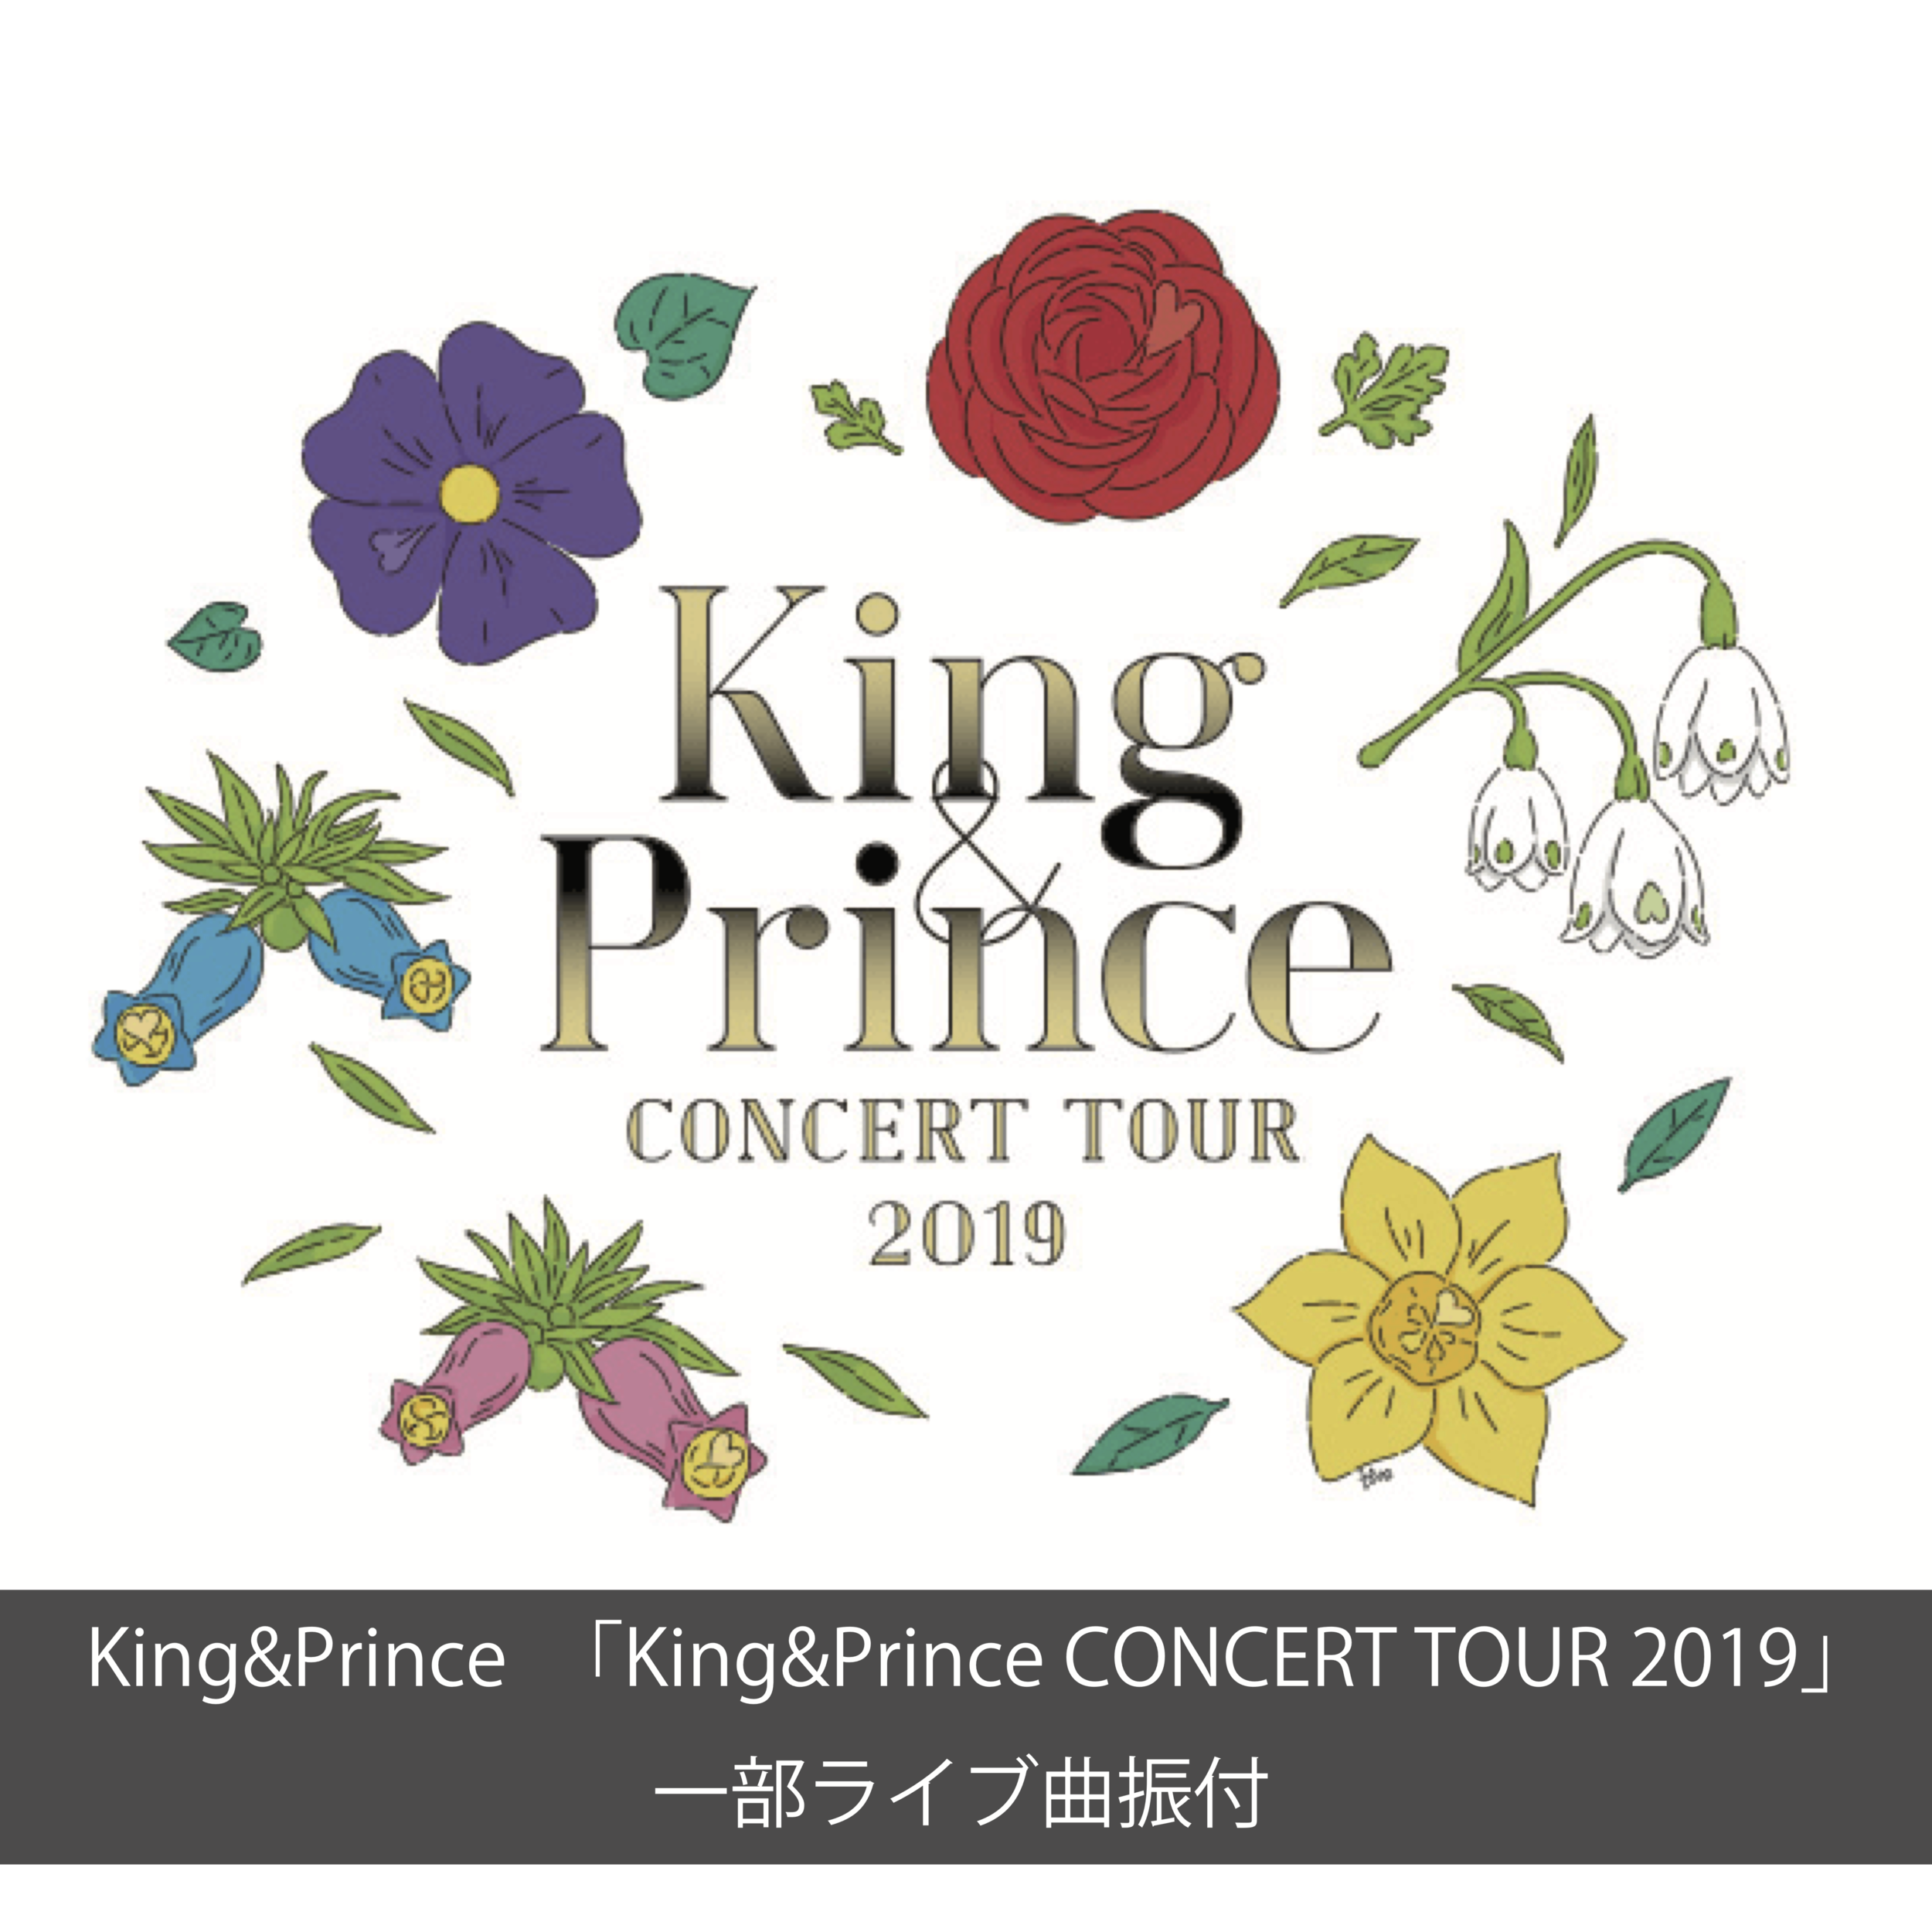 King&Prince CONCERT TOUR 2019.png